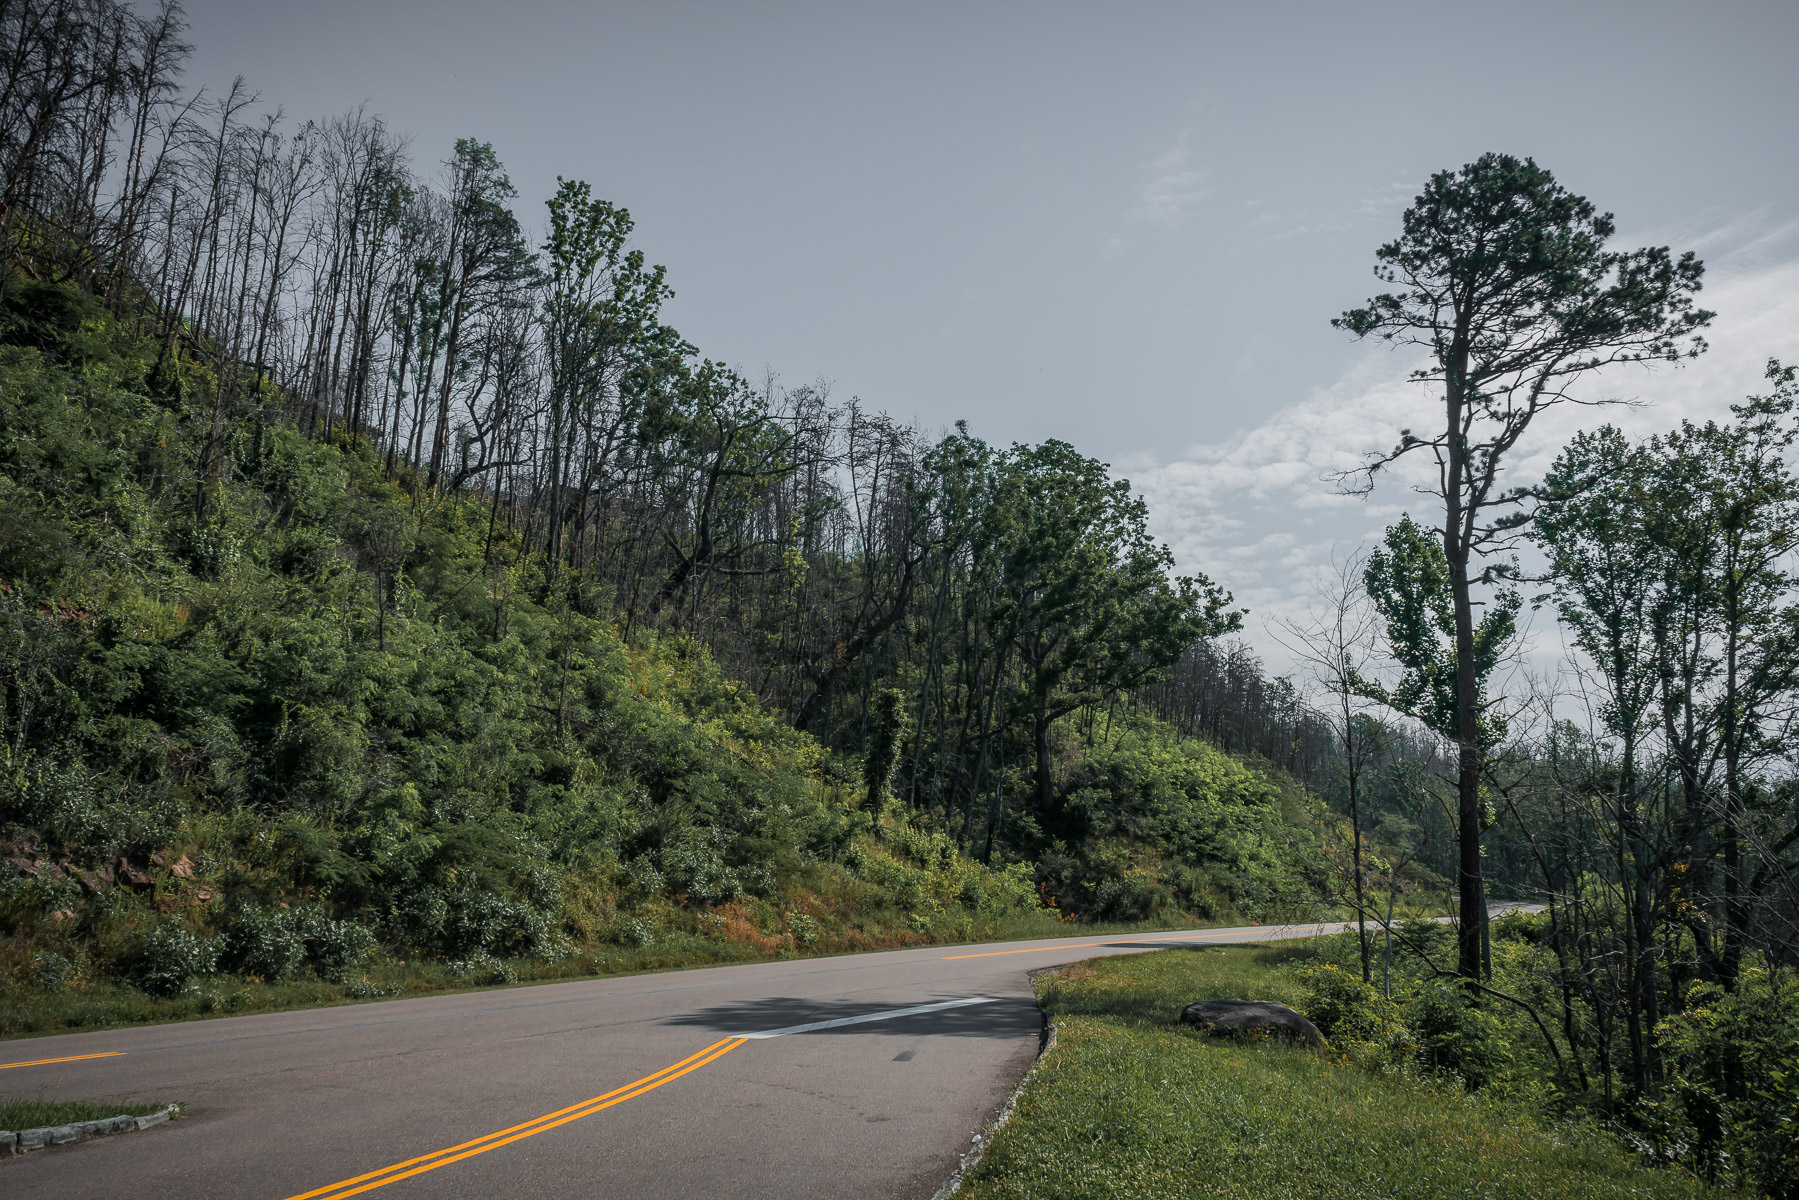 A road winds through the mountainside trees of Tennessee's Great Smoky Mountains National Park.